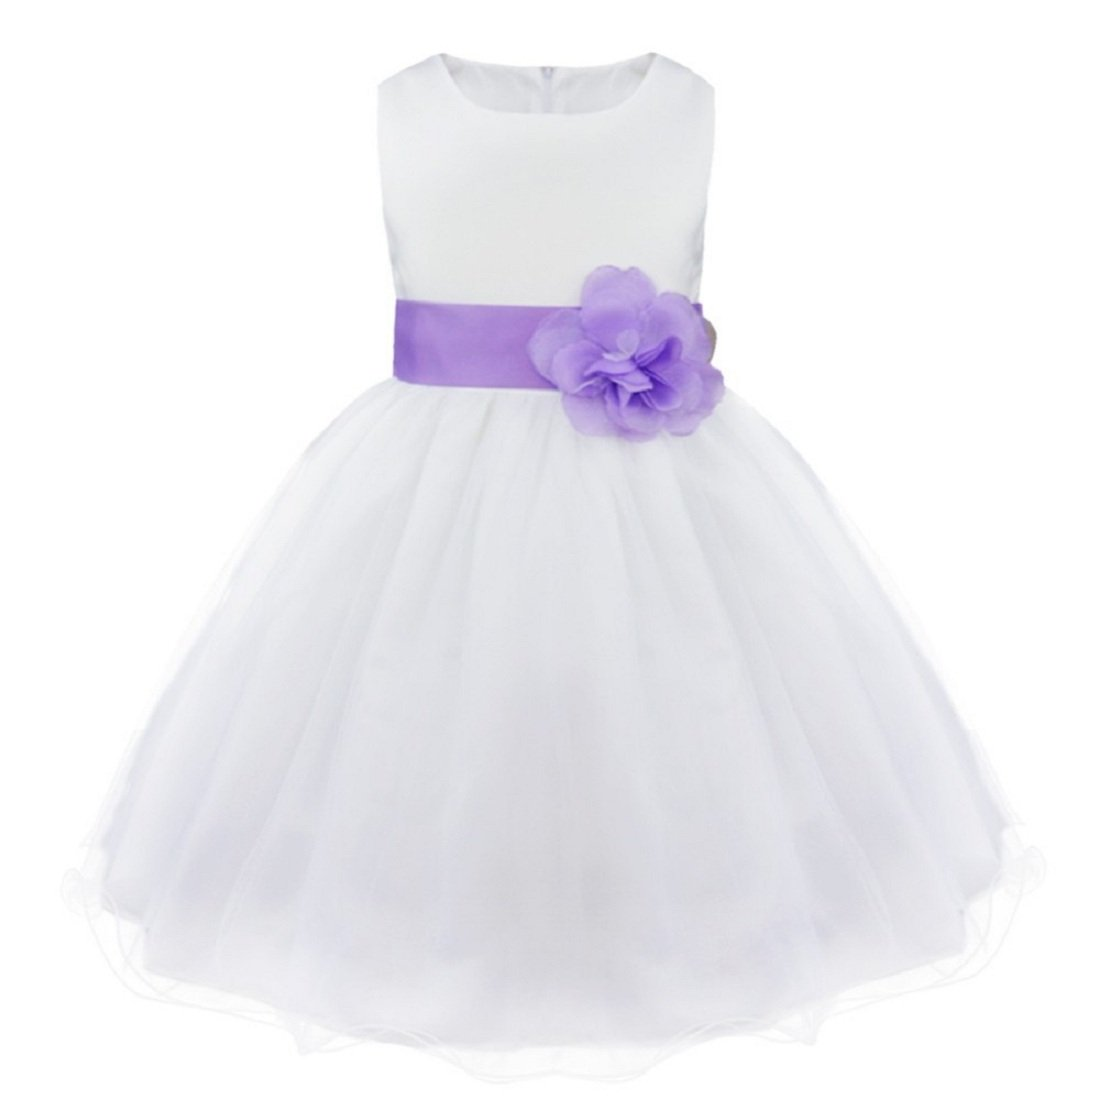 813256934eae SOFYANA Baby - Girl s Satin Princess Gown Birthday Party Wear Long ...